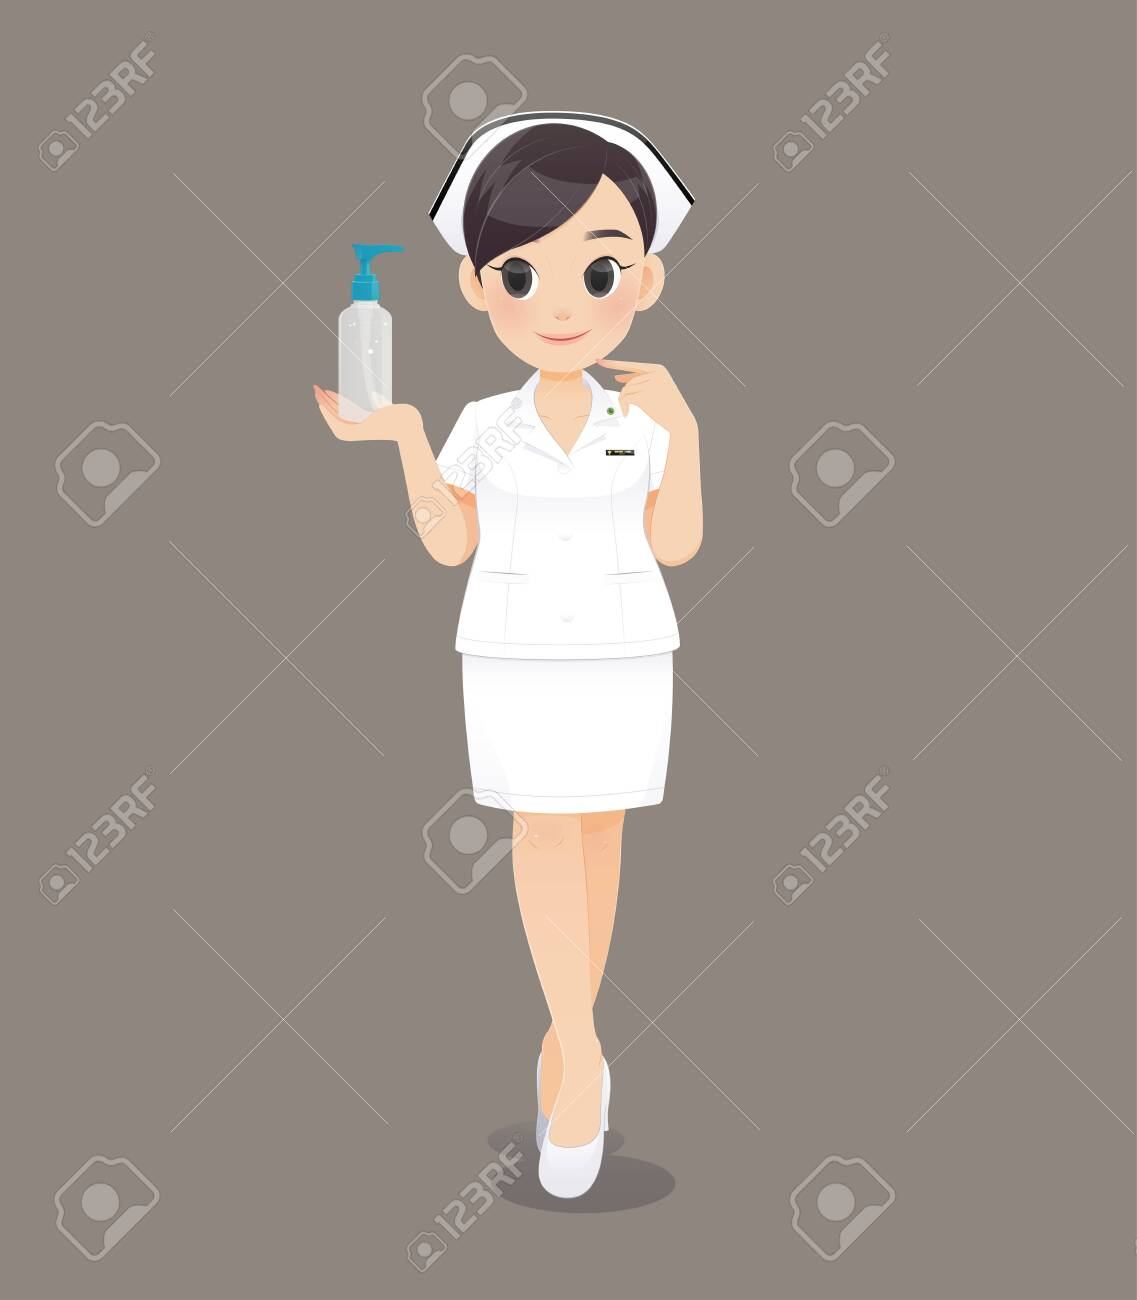 Cartoon woman doctor or nurse in white uniform on brown background, Smiling female nursing staff, Vector illustration in character design - 122571241